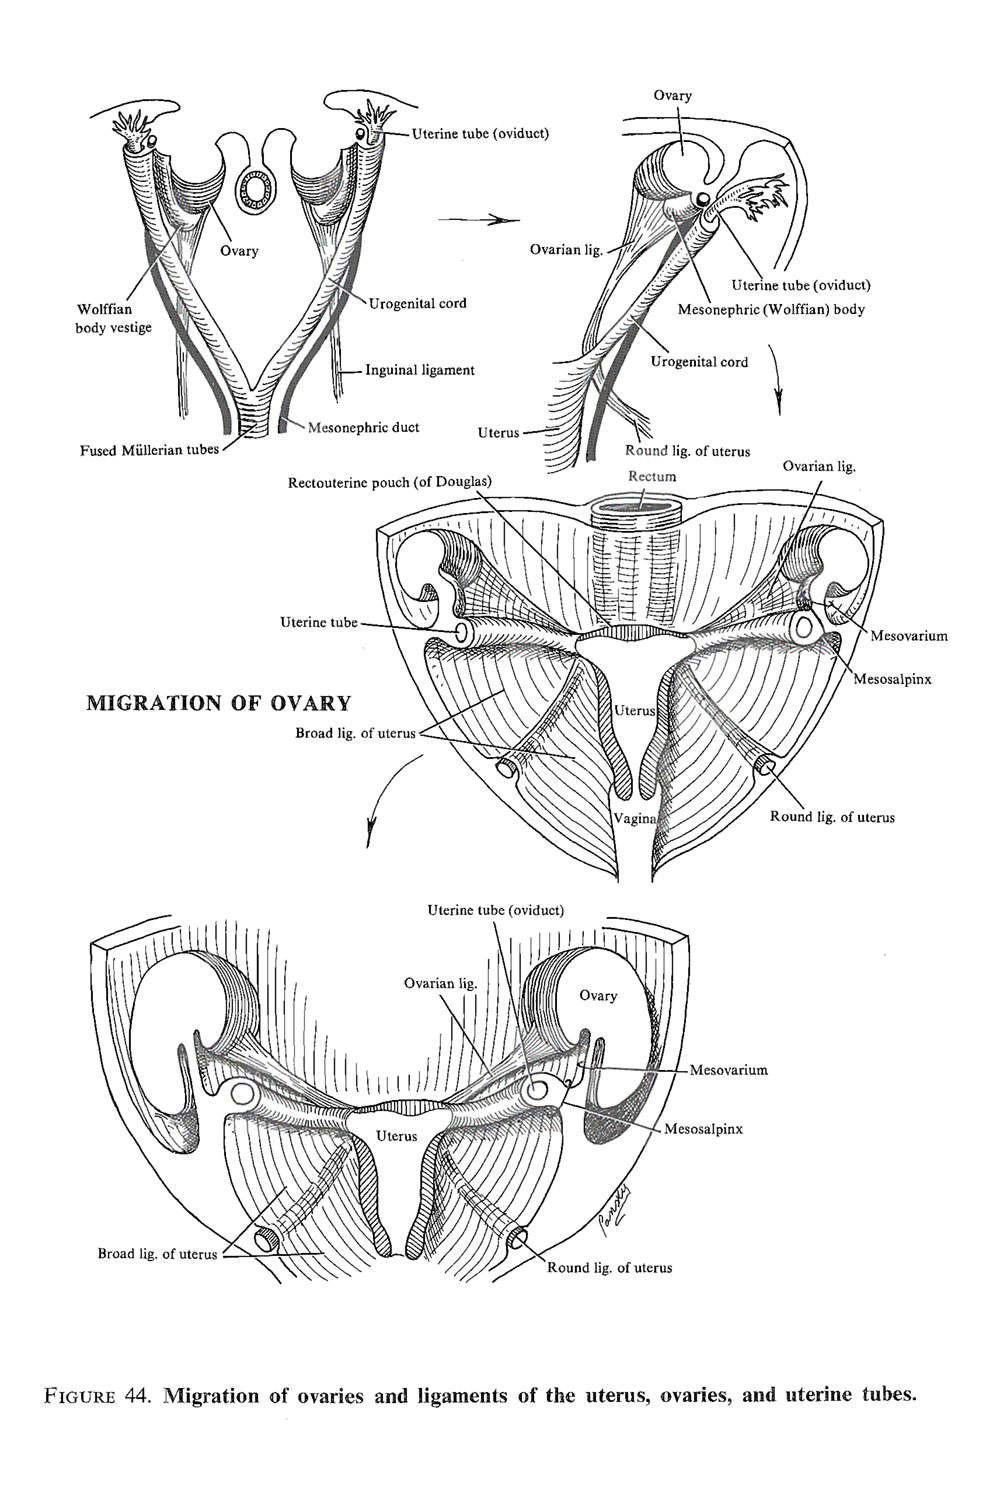 differentiation of the female genital tracts: uterus, vagina, auxiliary glands, mesenteries: image #3